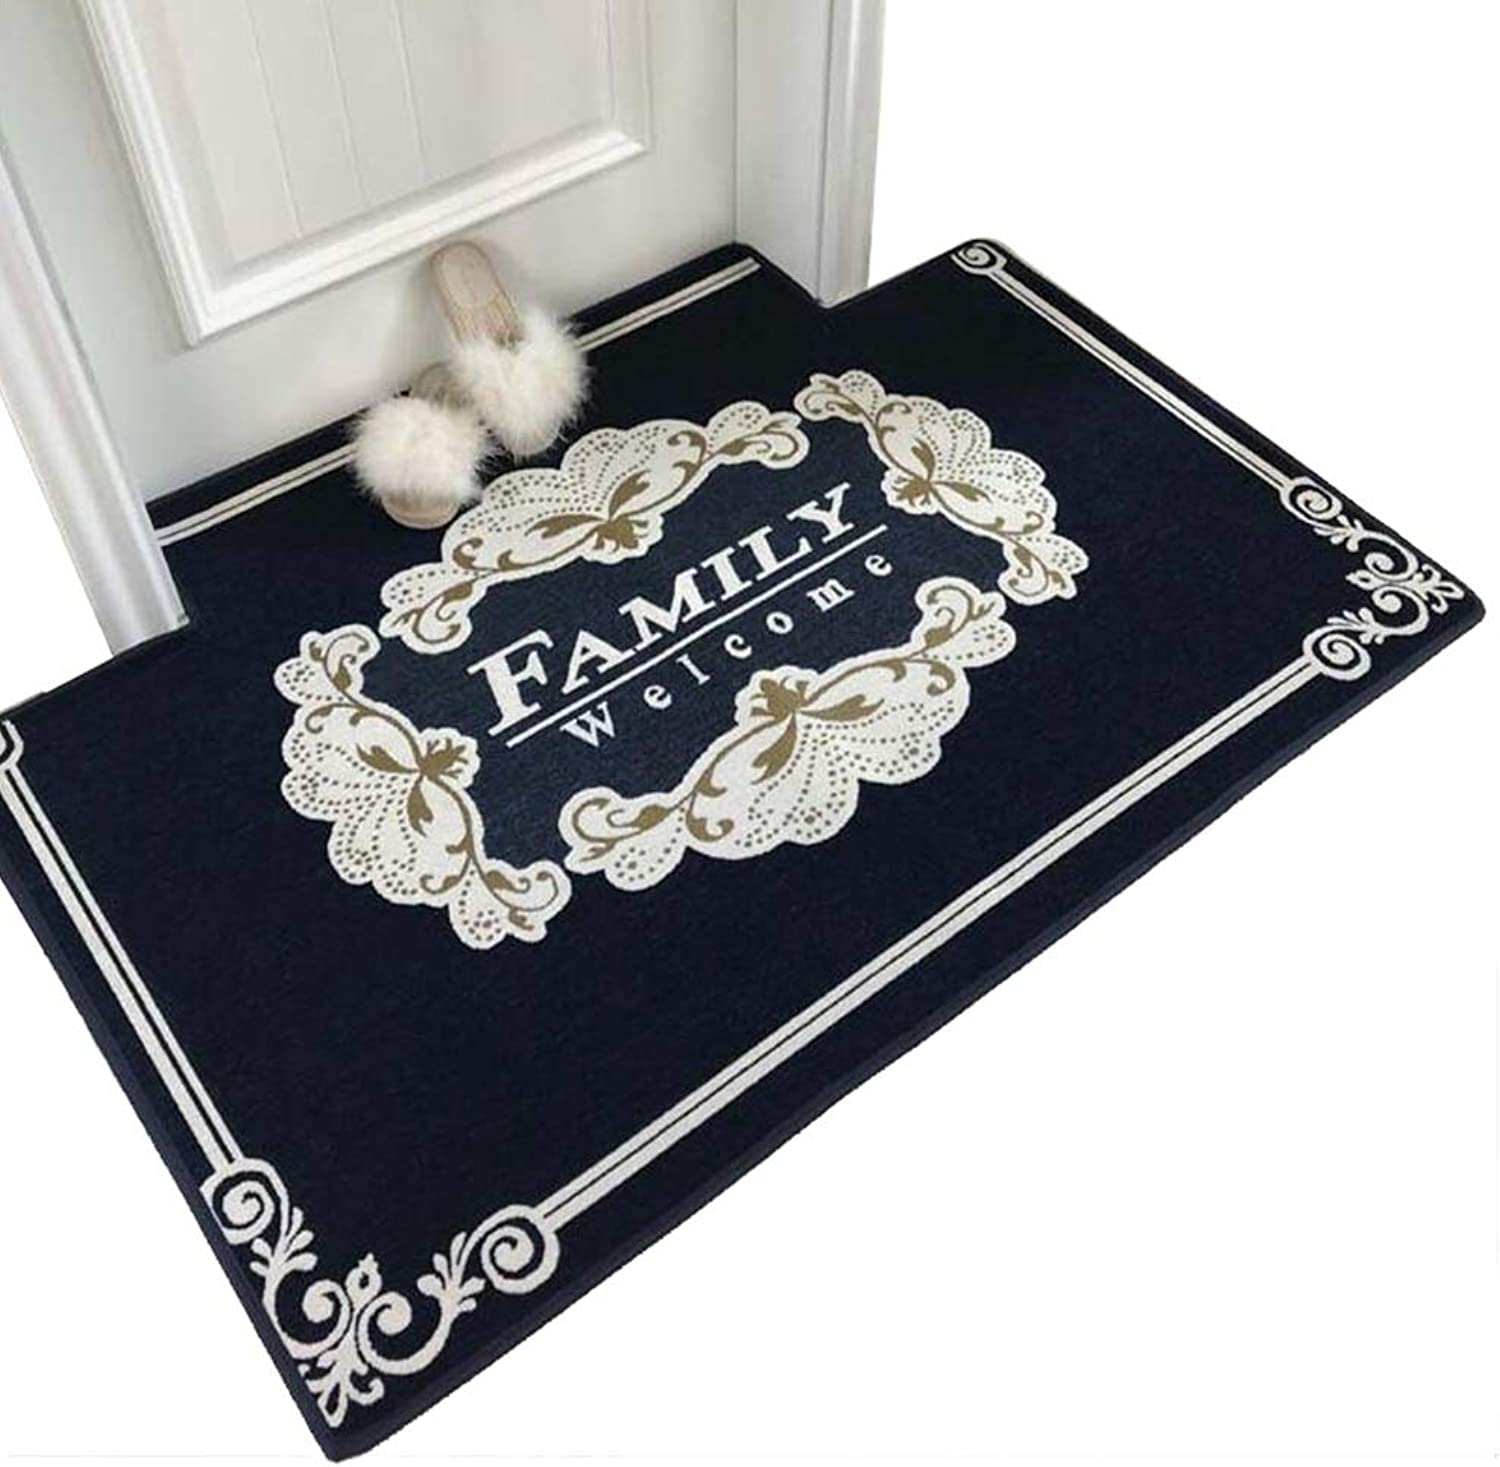 JIAJUAN Welcome Doormat Home Indoor Washable Kitchen Bedroom Entryway Rug Water Absorption Non-Slip Floor Mats (color   bluee, Size   100x140cm)